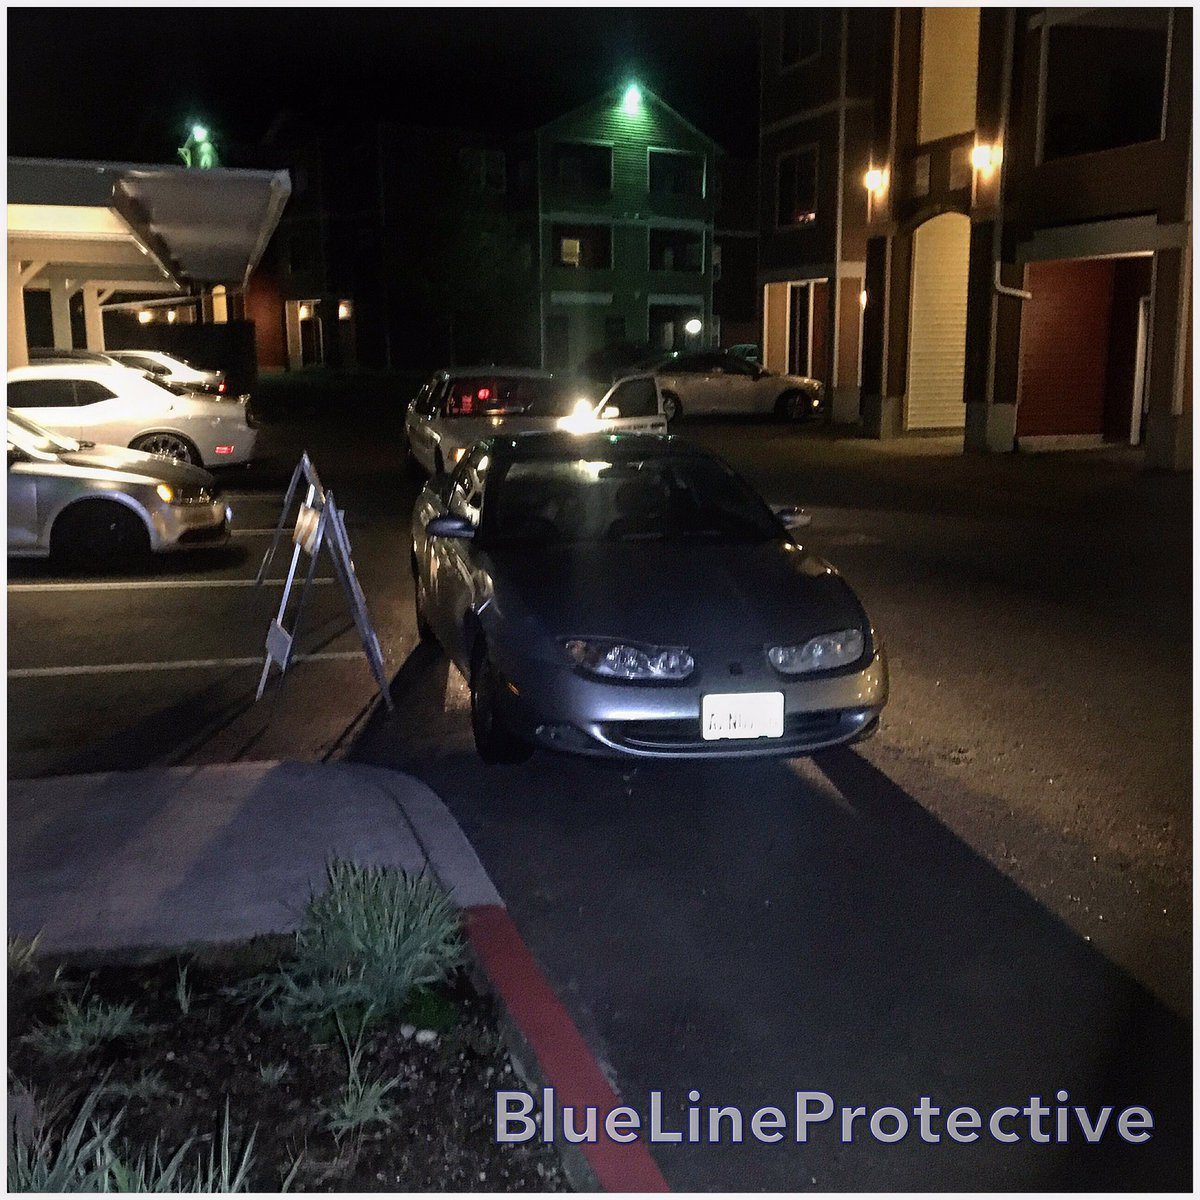 We missed that &quot;park wherever you want&quot; memo. #parking #fail #towed #patrol #bluelineprotective #apartment #doubleparked #fire #lane<br>http://pic.twitter.com/fREVJvbuRc